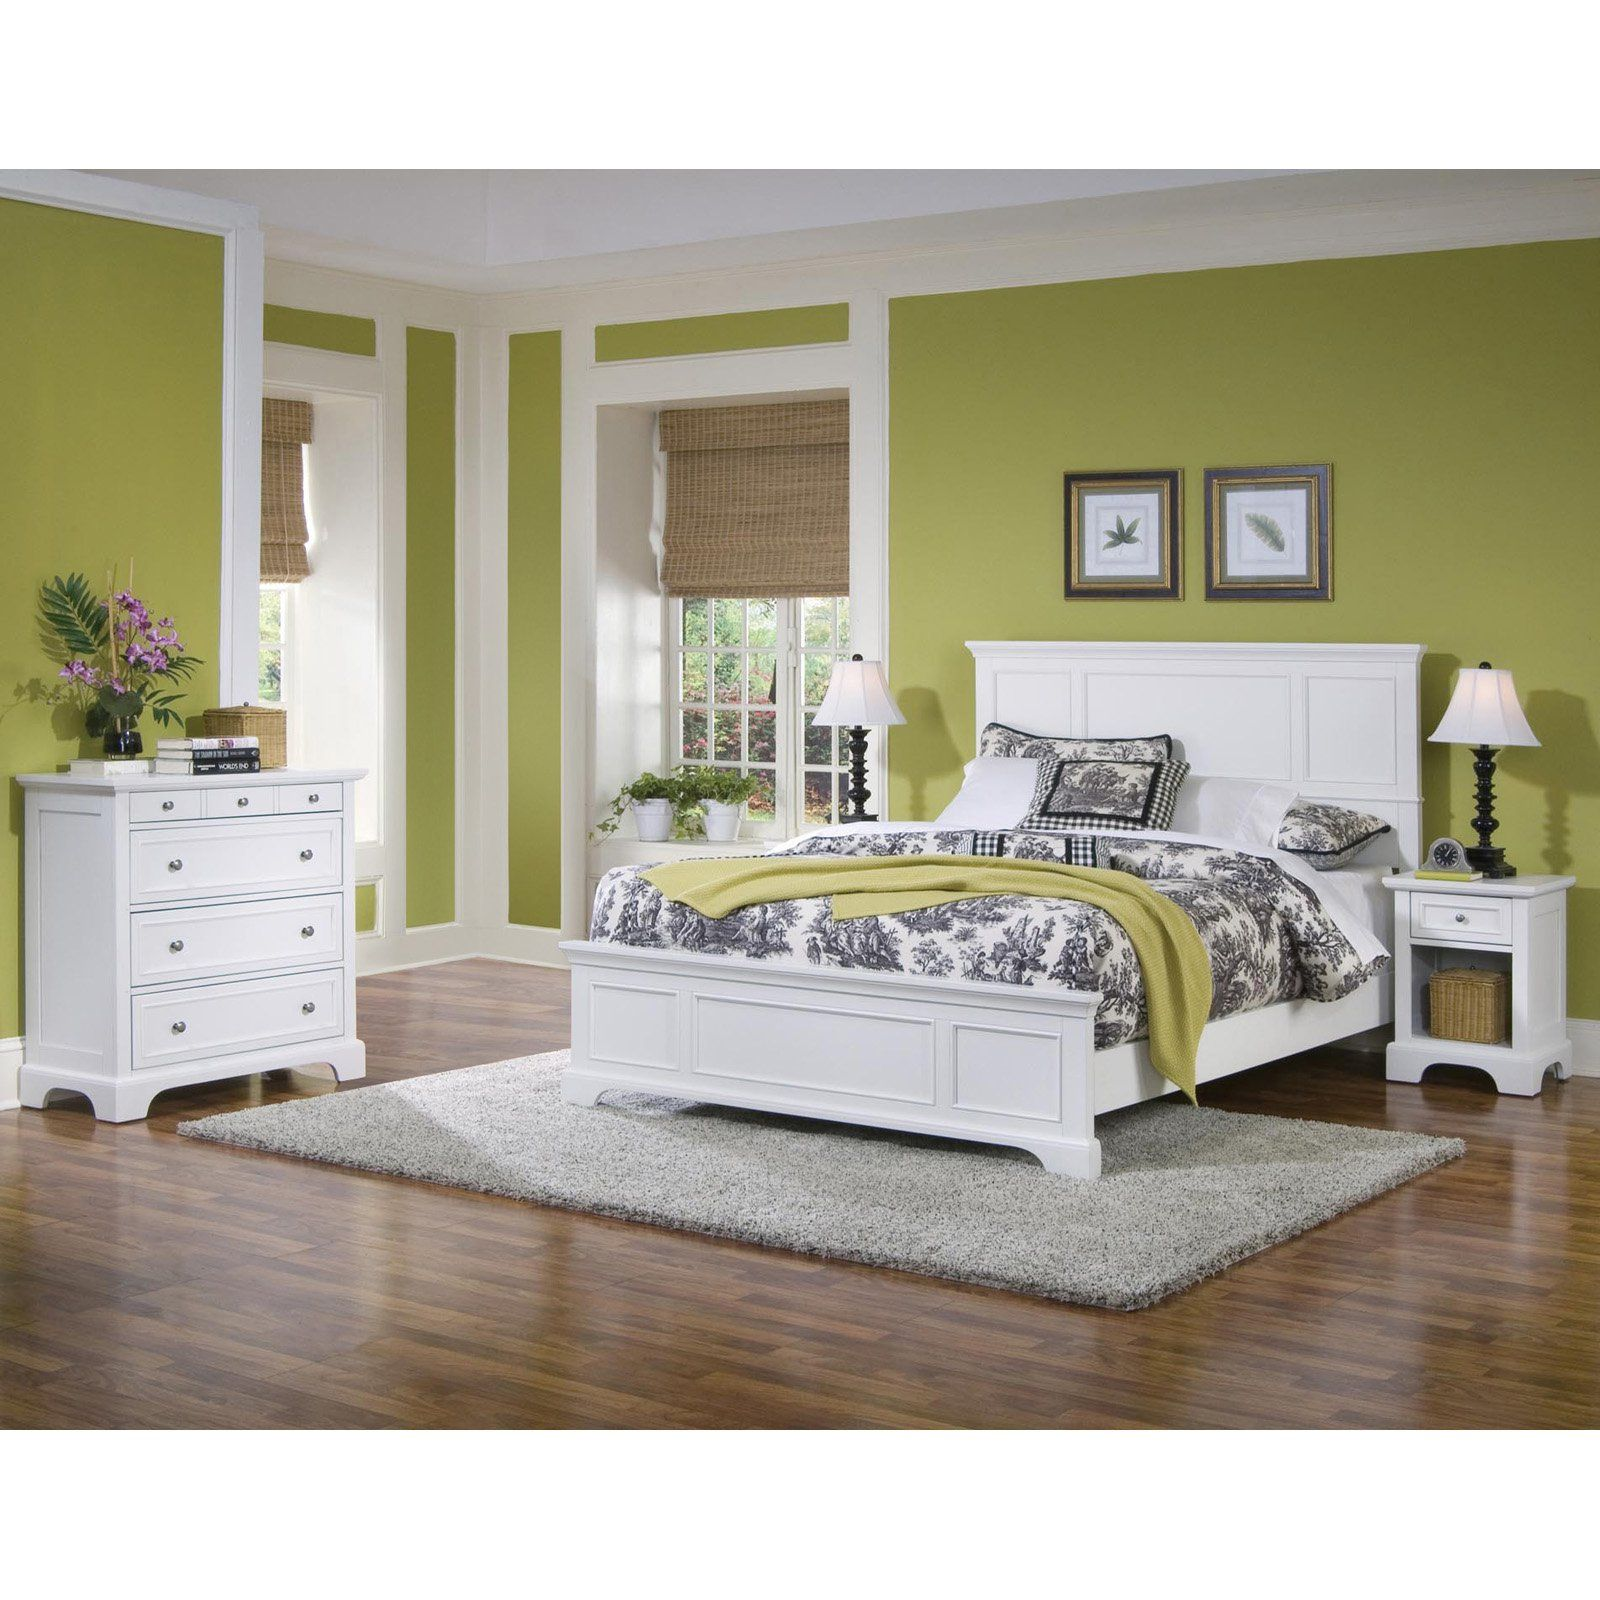 Home Styles Naples Queen Panel Bed